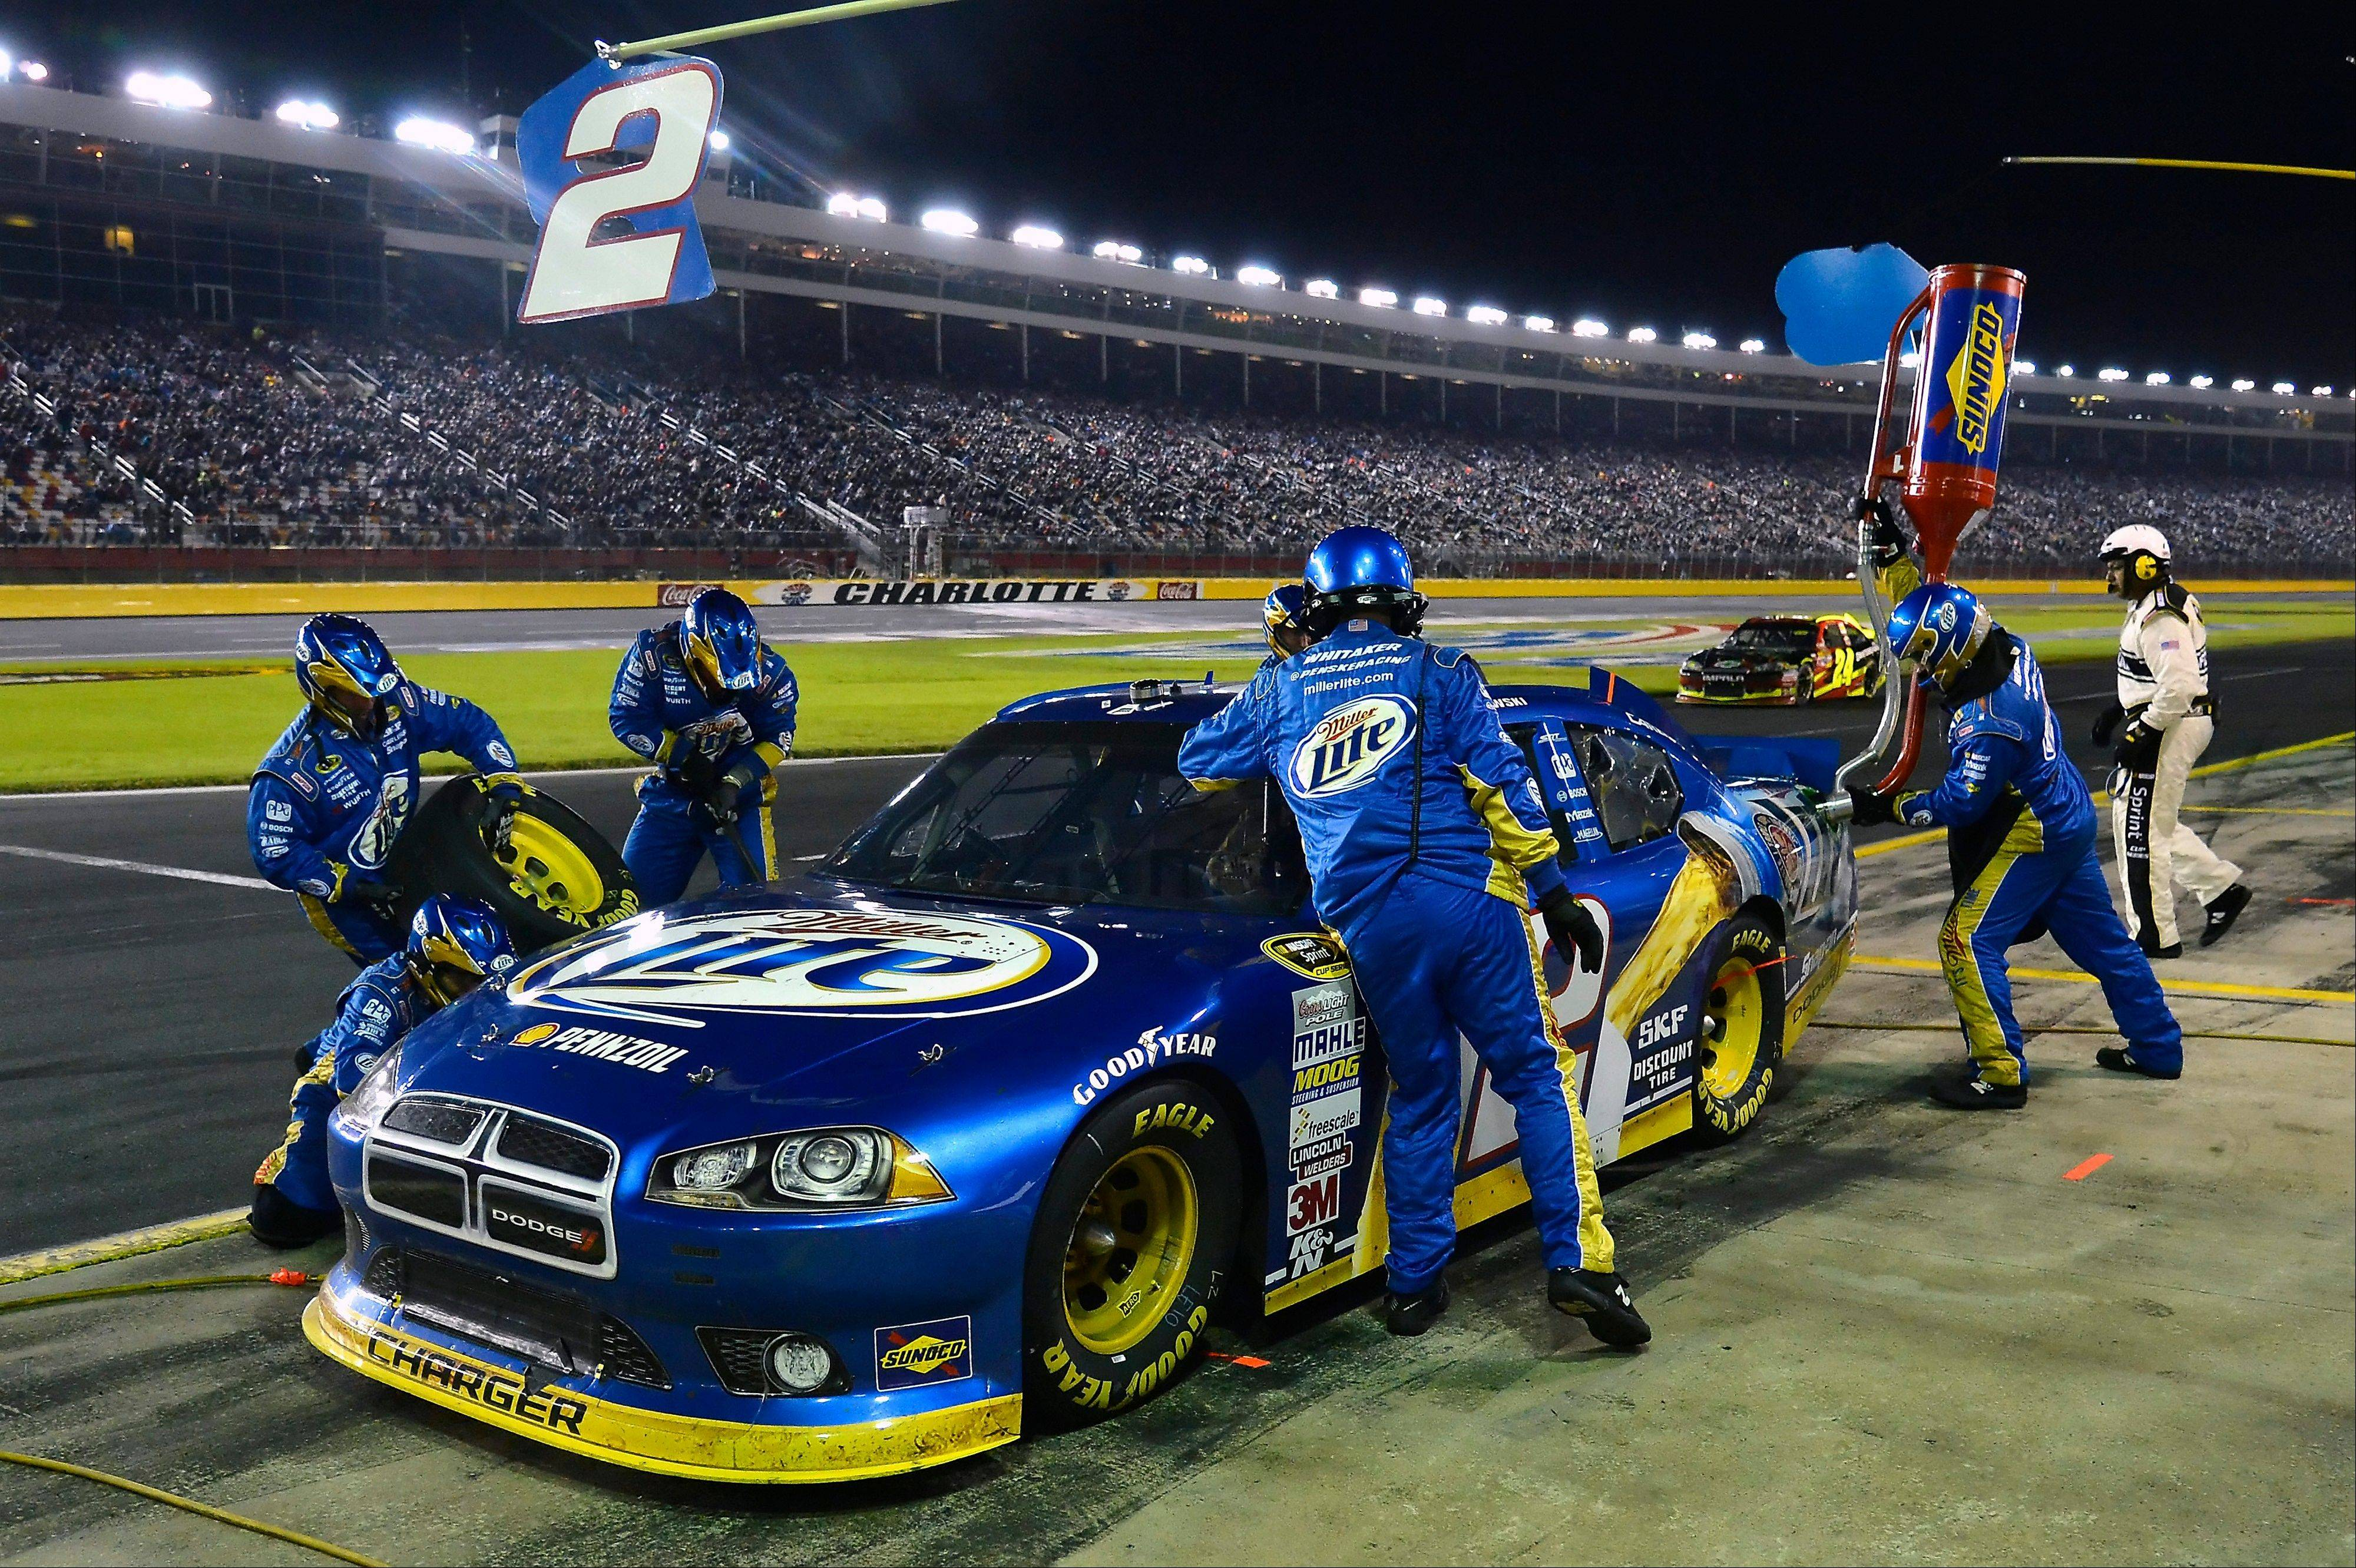 Brad Keselowski makes a pitstop during the NASCAR Sprint Cup Series auto race at Charlotte Motor Speedway Saturday in Concord, N.C.